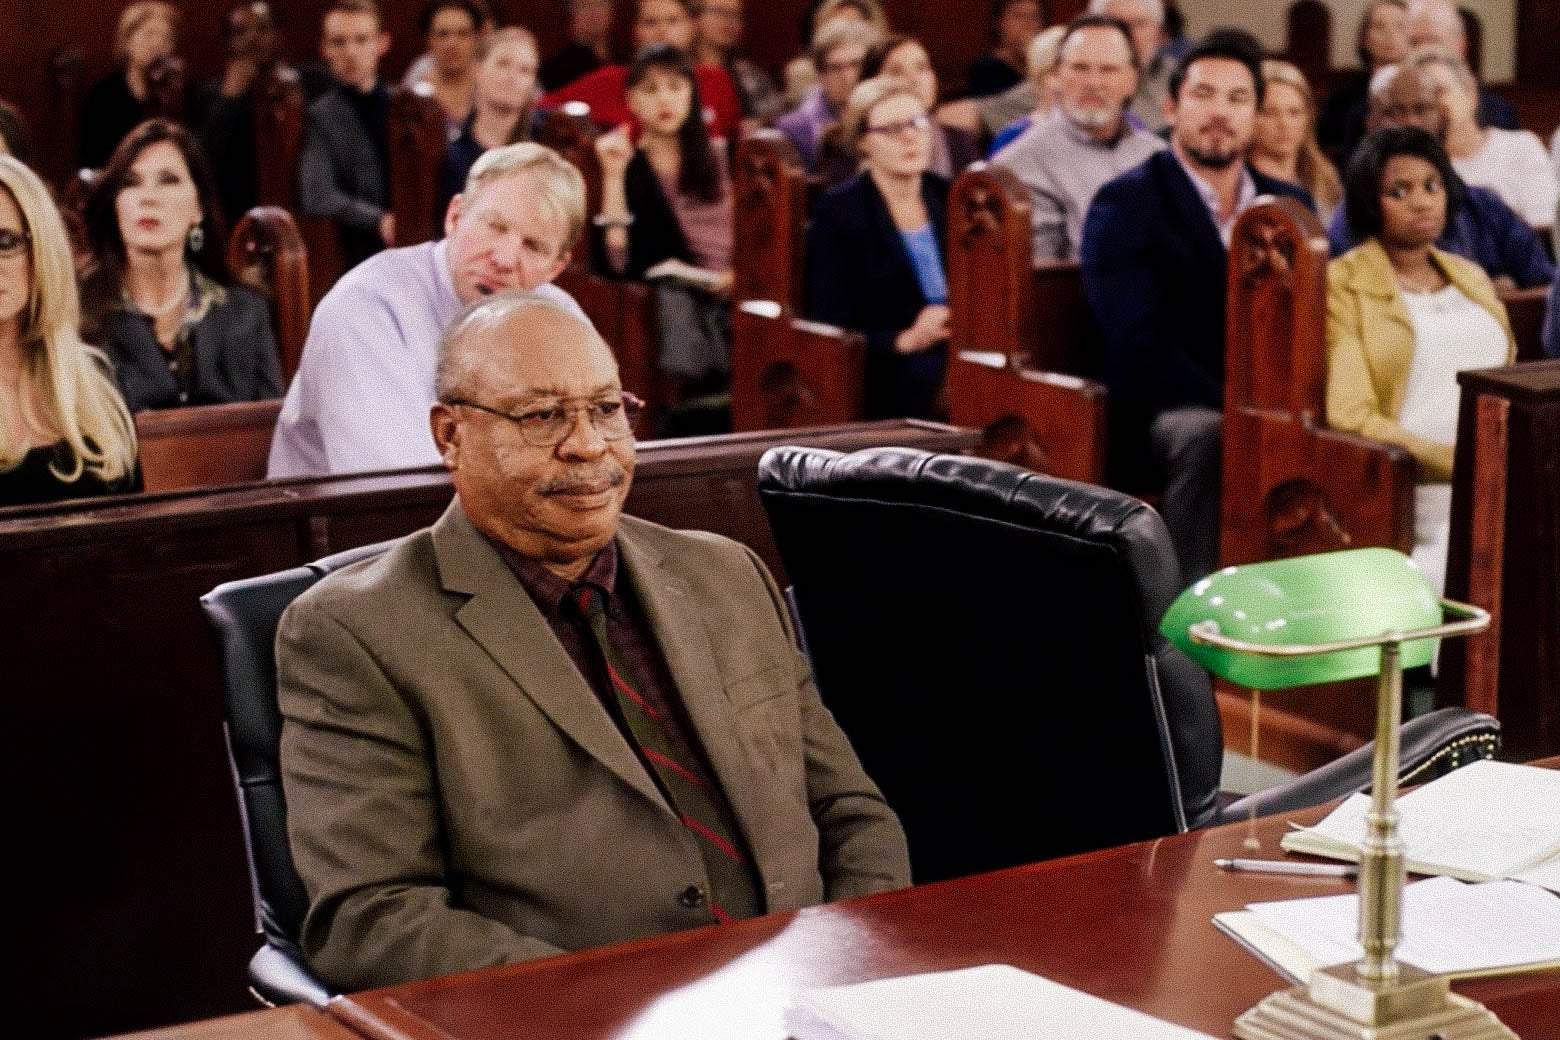 In this still from Gosnell, Earl Billings as Dr. Kermit Gosnell sits behind a table in a courtroom.